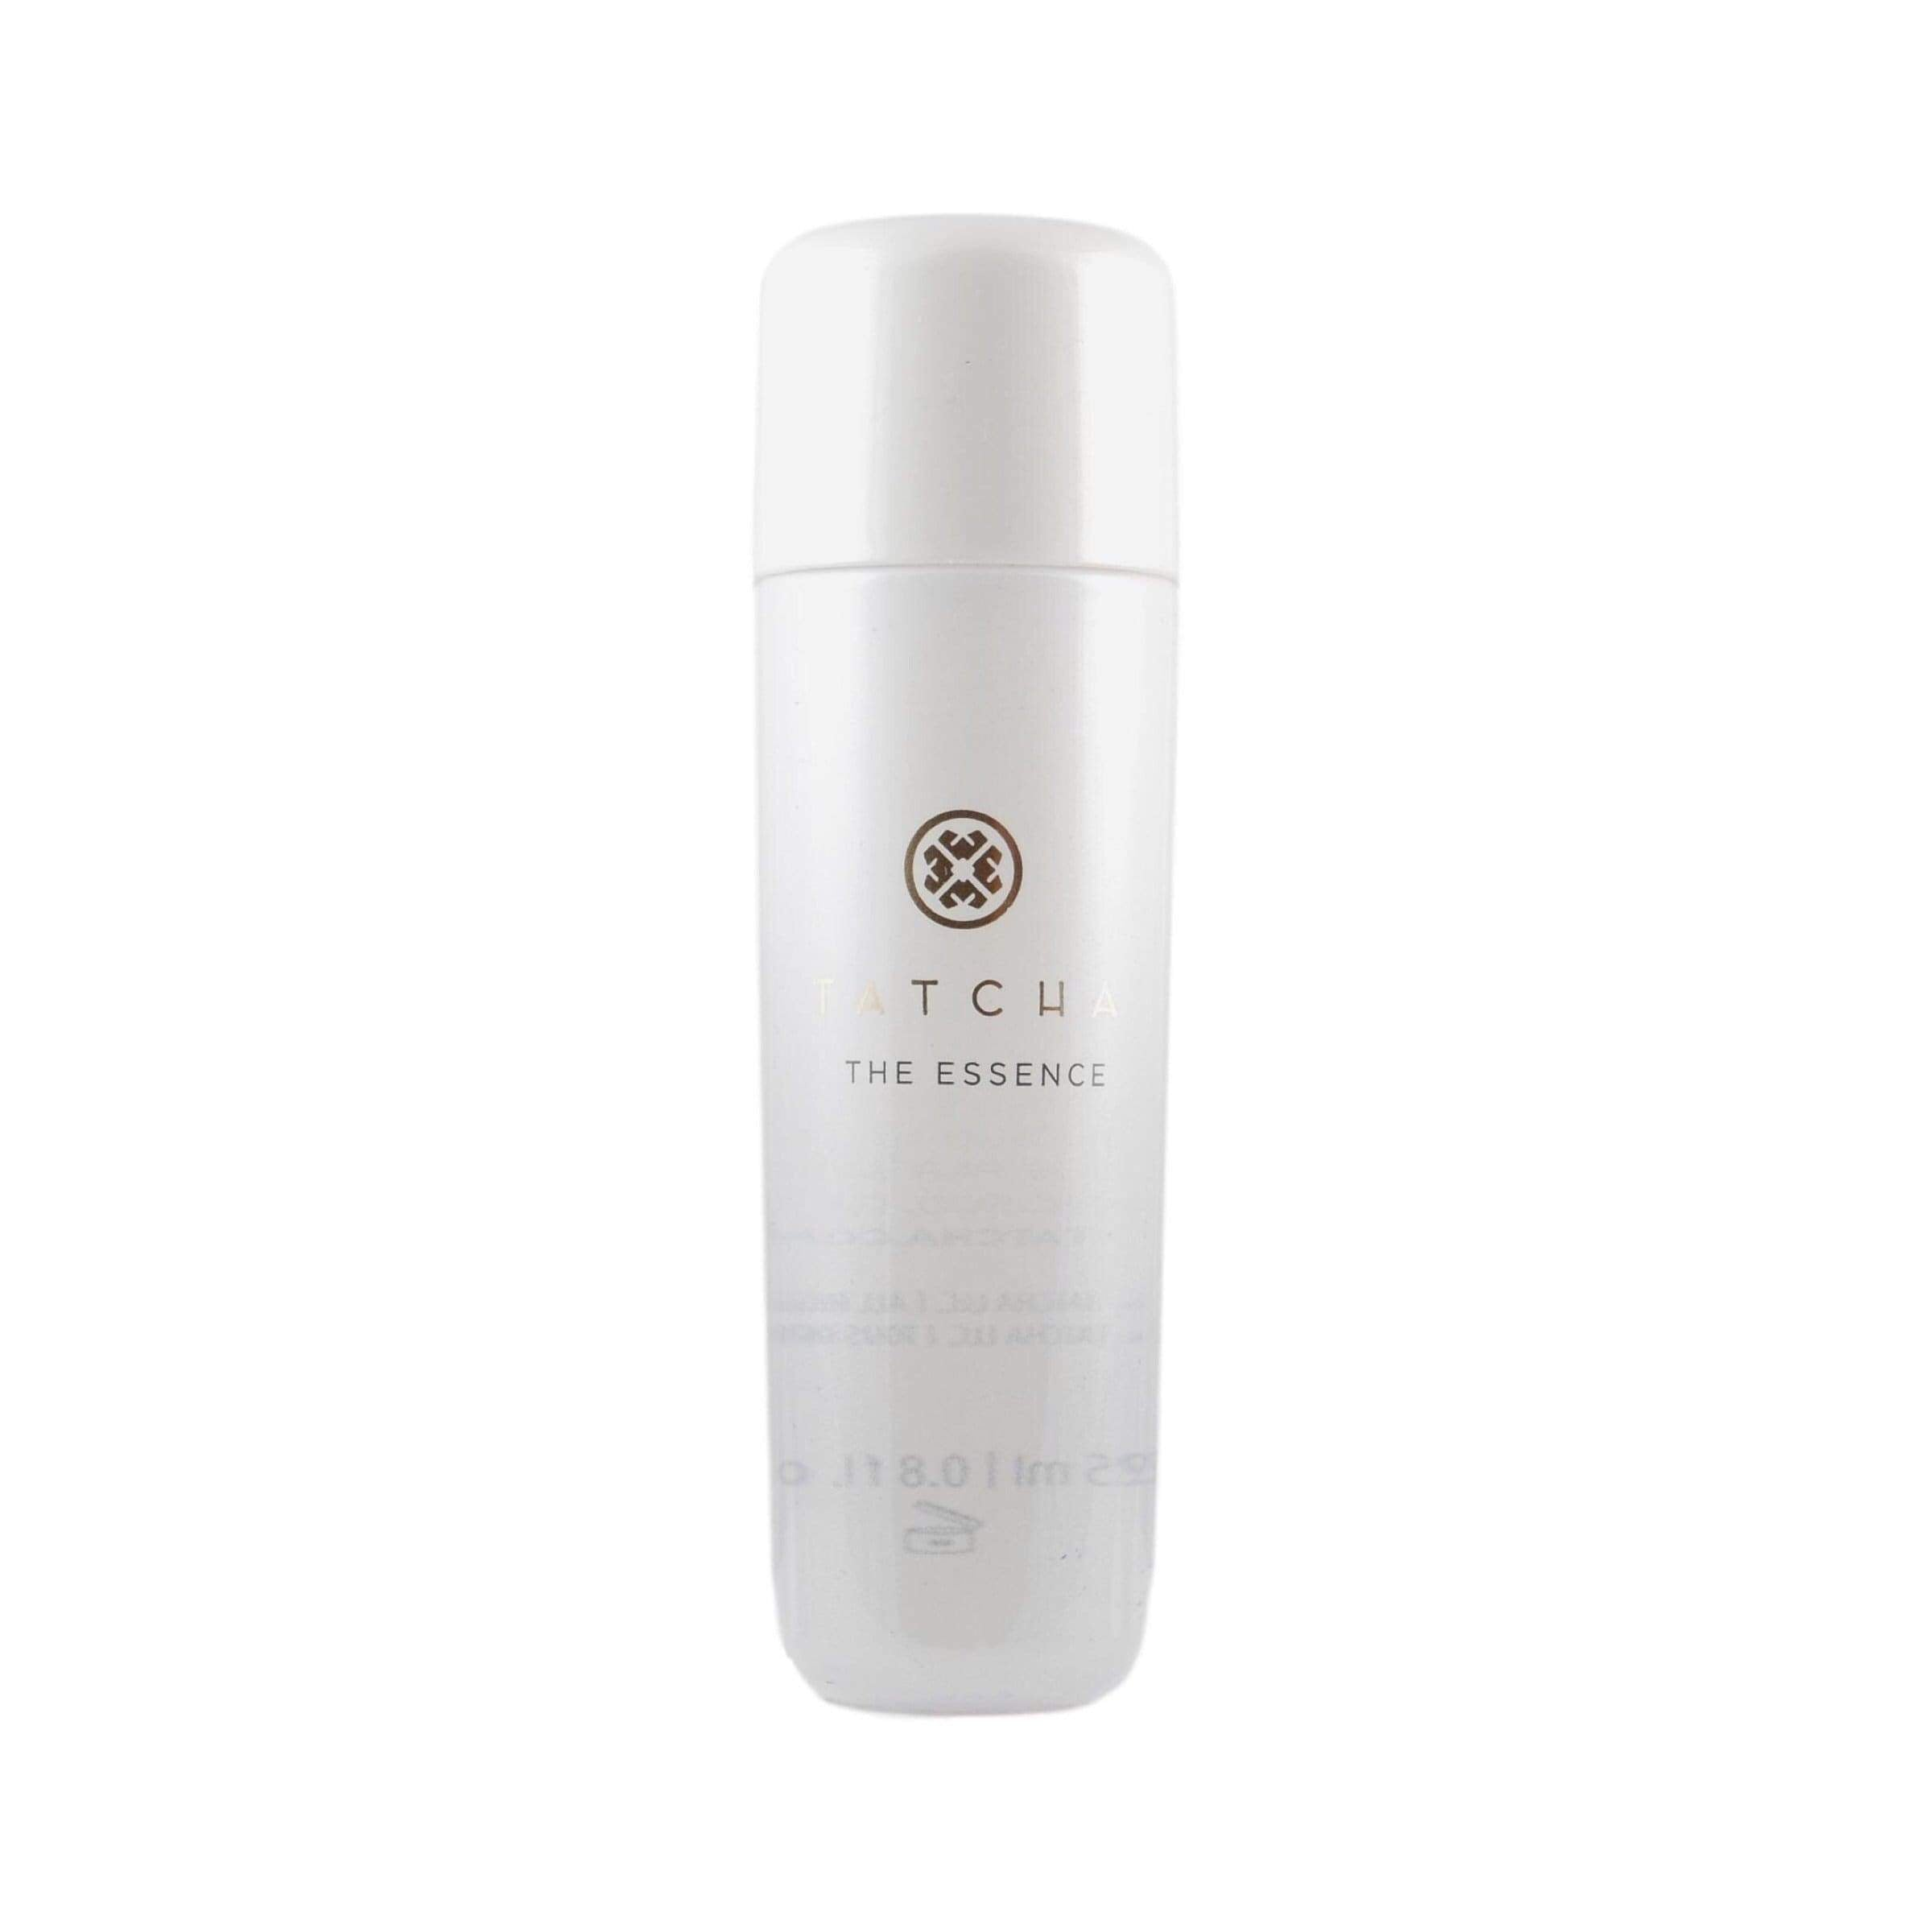 Tatcha Skin Care Tatcha The Essence Travel Size, 25ml | 0.8 fl.oz